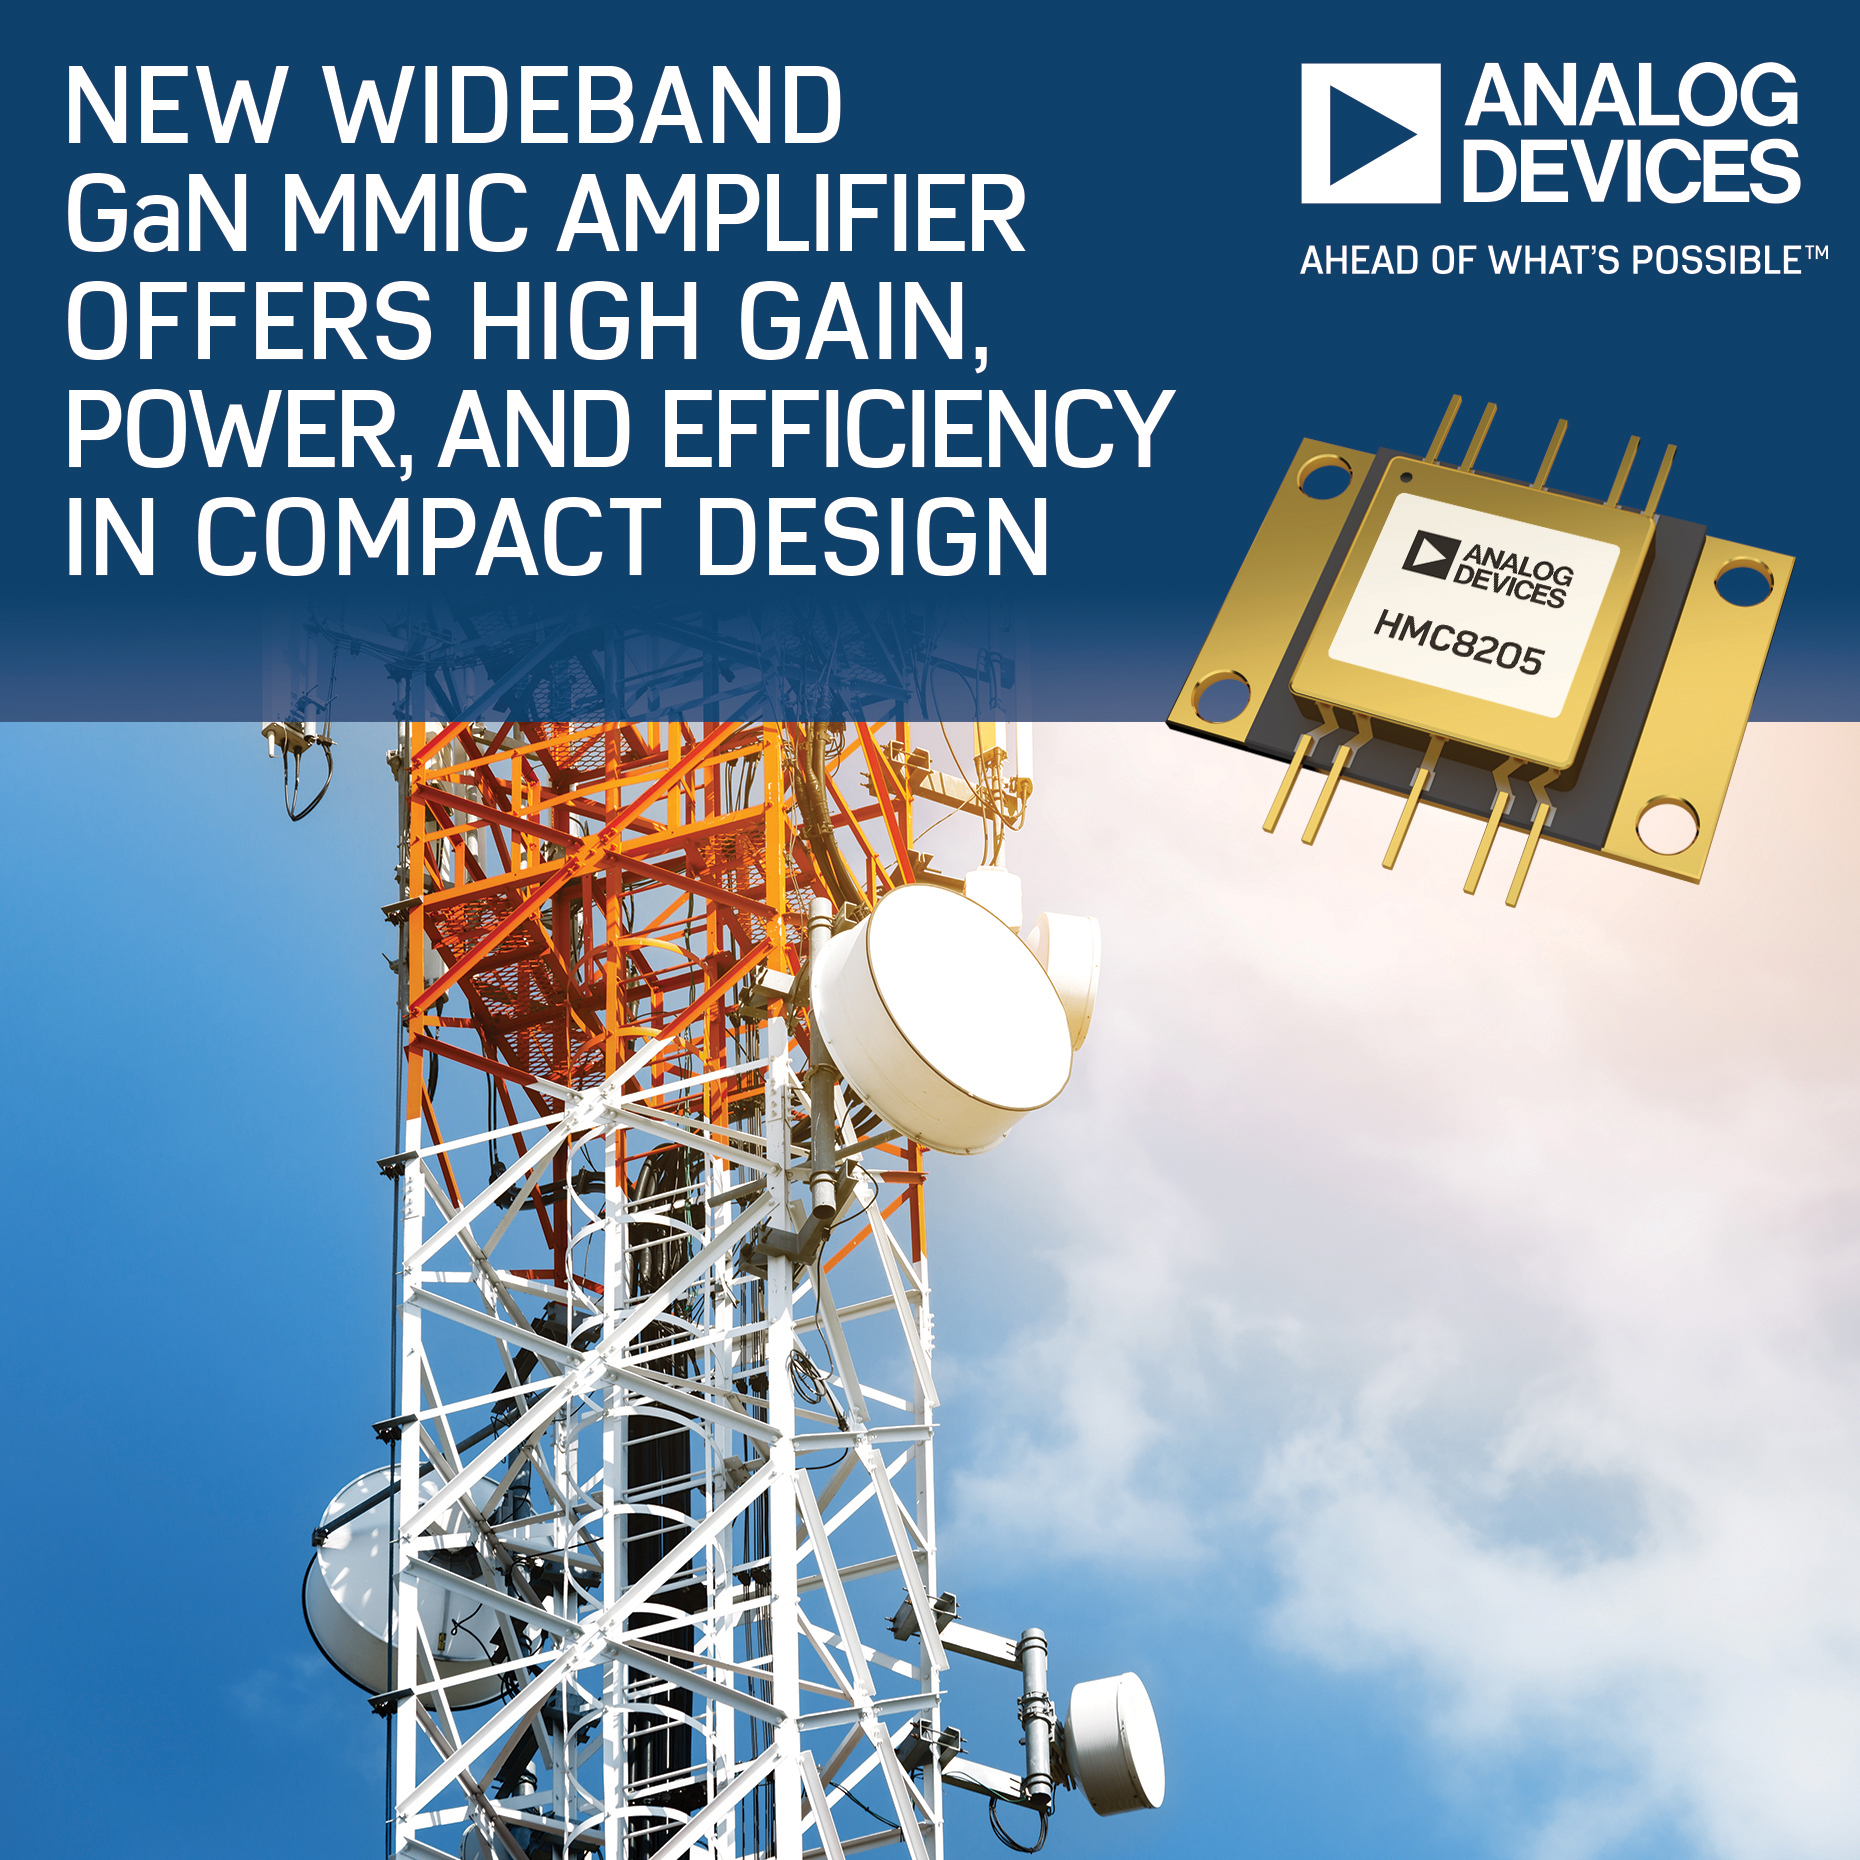 Analog Devices' Wideband GaN MMIC Amplifier Offers High Gain, Power and Efficiency in Compact Design (Photo: Business Wire)